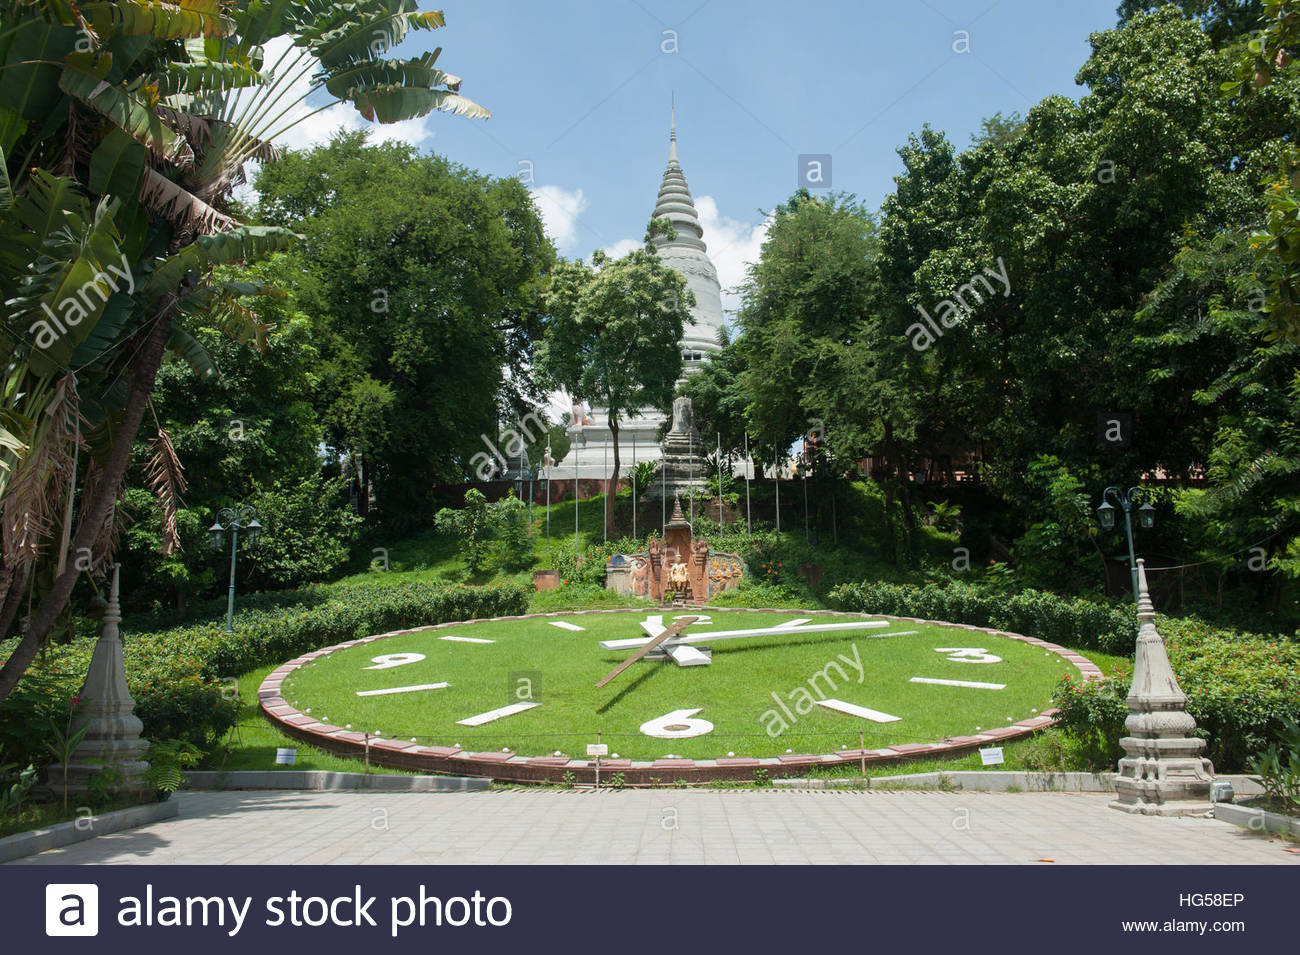 Phnom Penh Cambodia Large Ornamental Garden Clock In The Grounds Of Wat  Phnom.